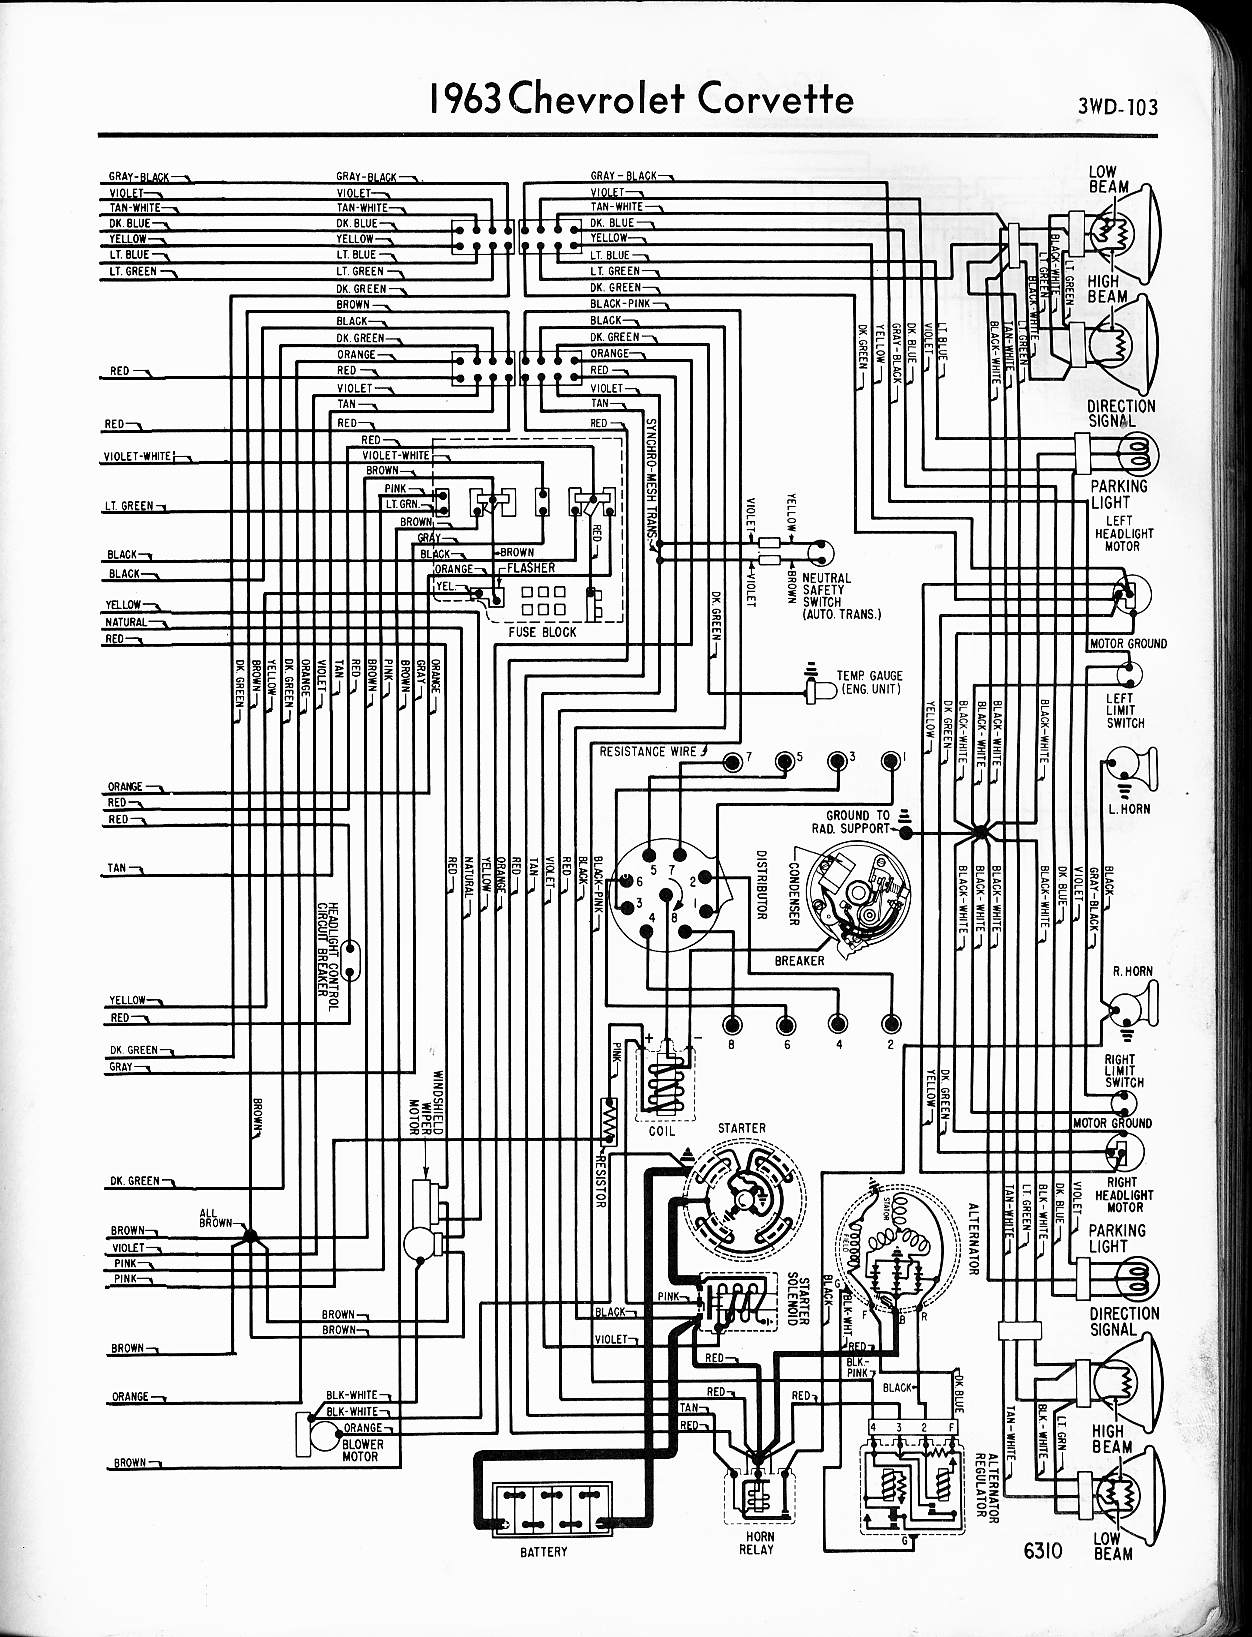 hight resolution of wrg 4500 1969 cj wiring diagram1960 corvette wiring harness opinions about wiring diagram